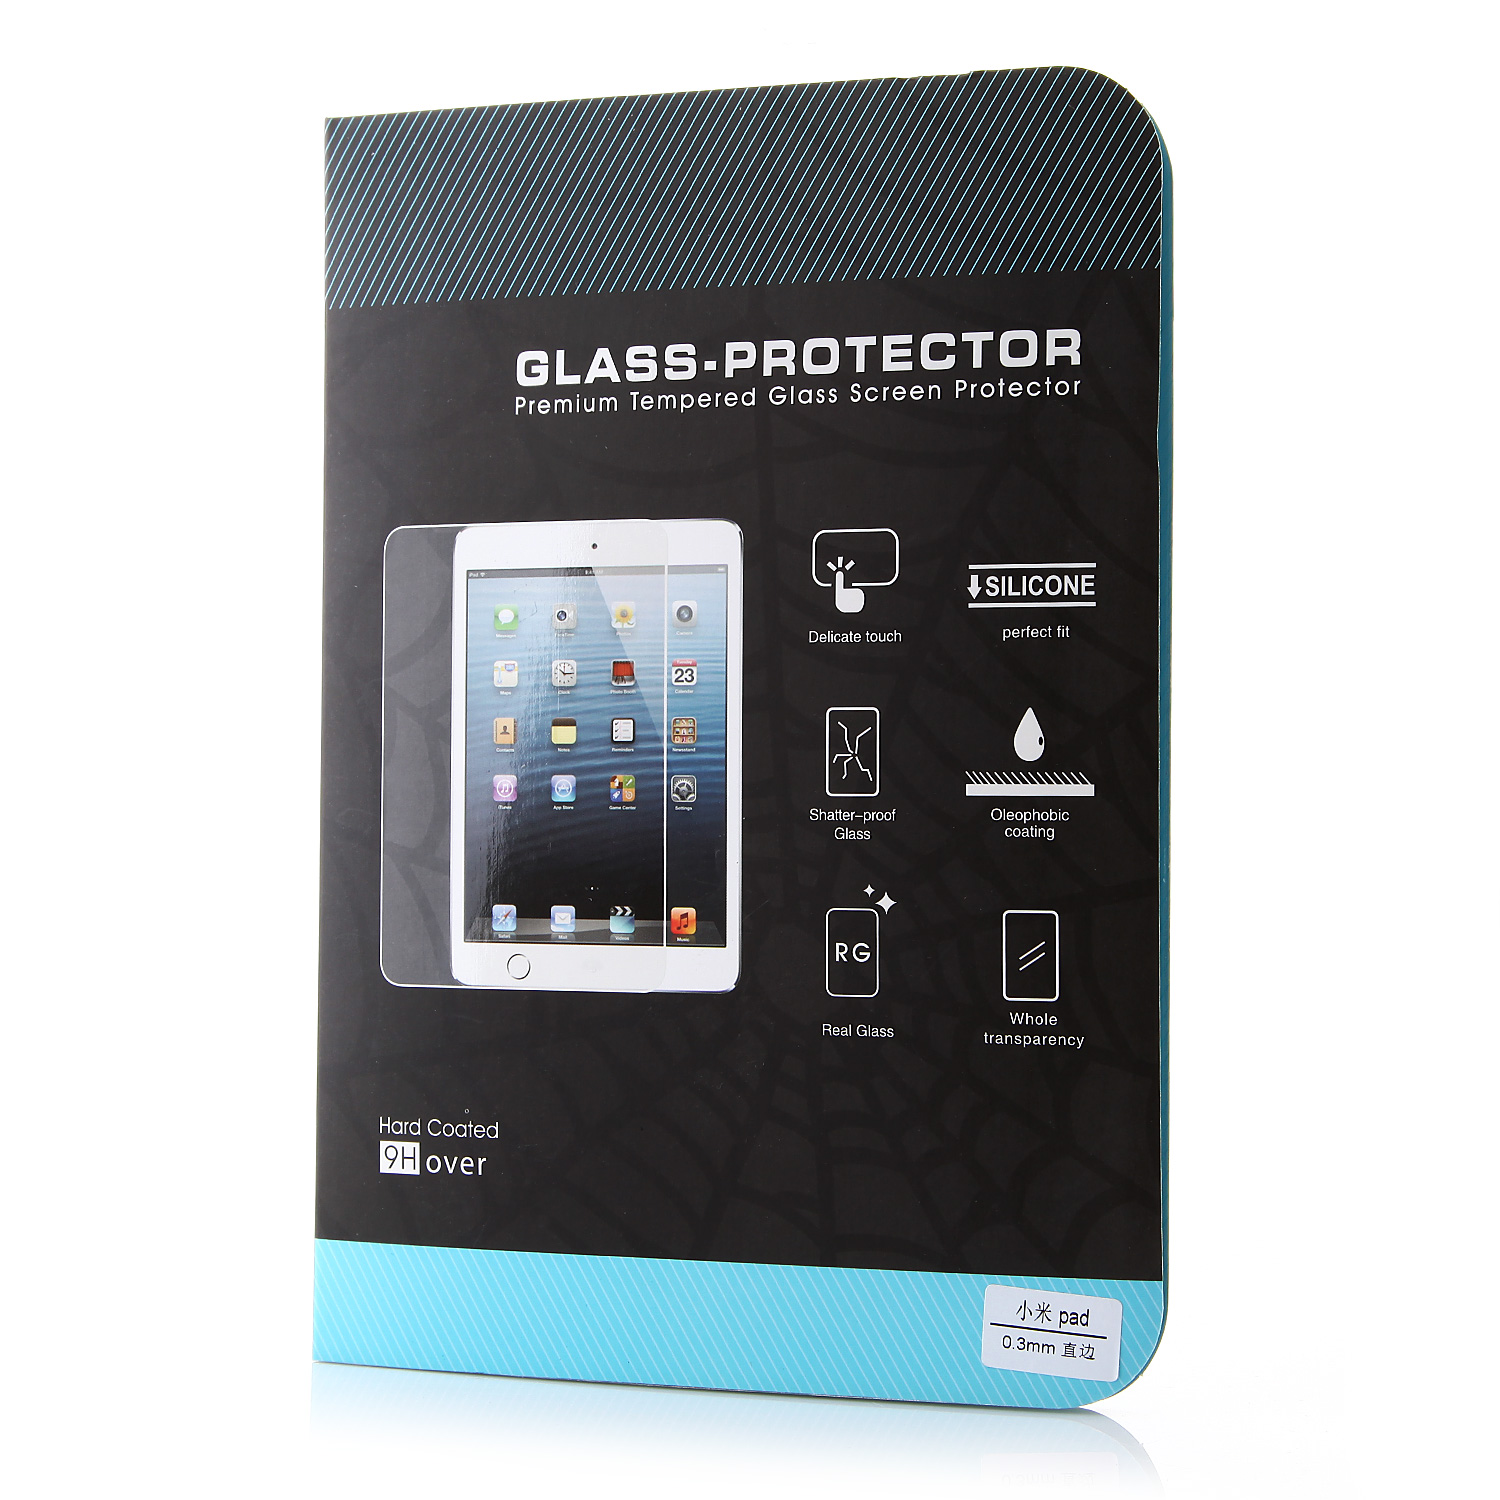 Premium Tempered Glass Protection Screen for XIAOMI MI PAD Tablet PC